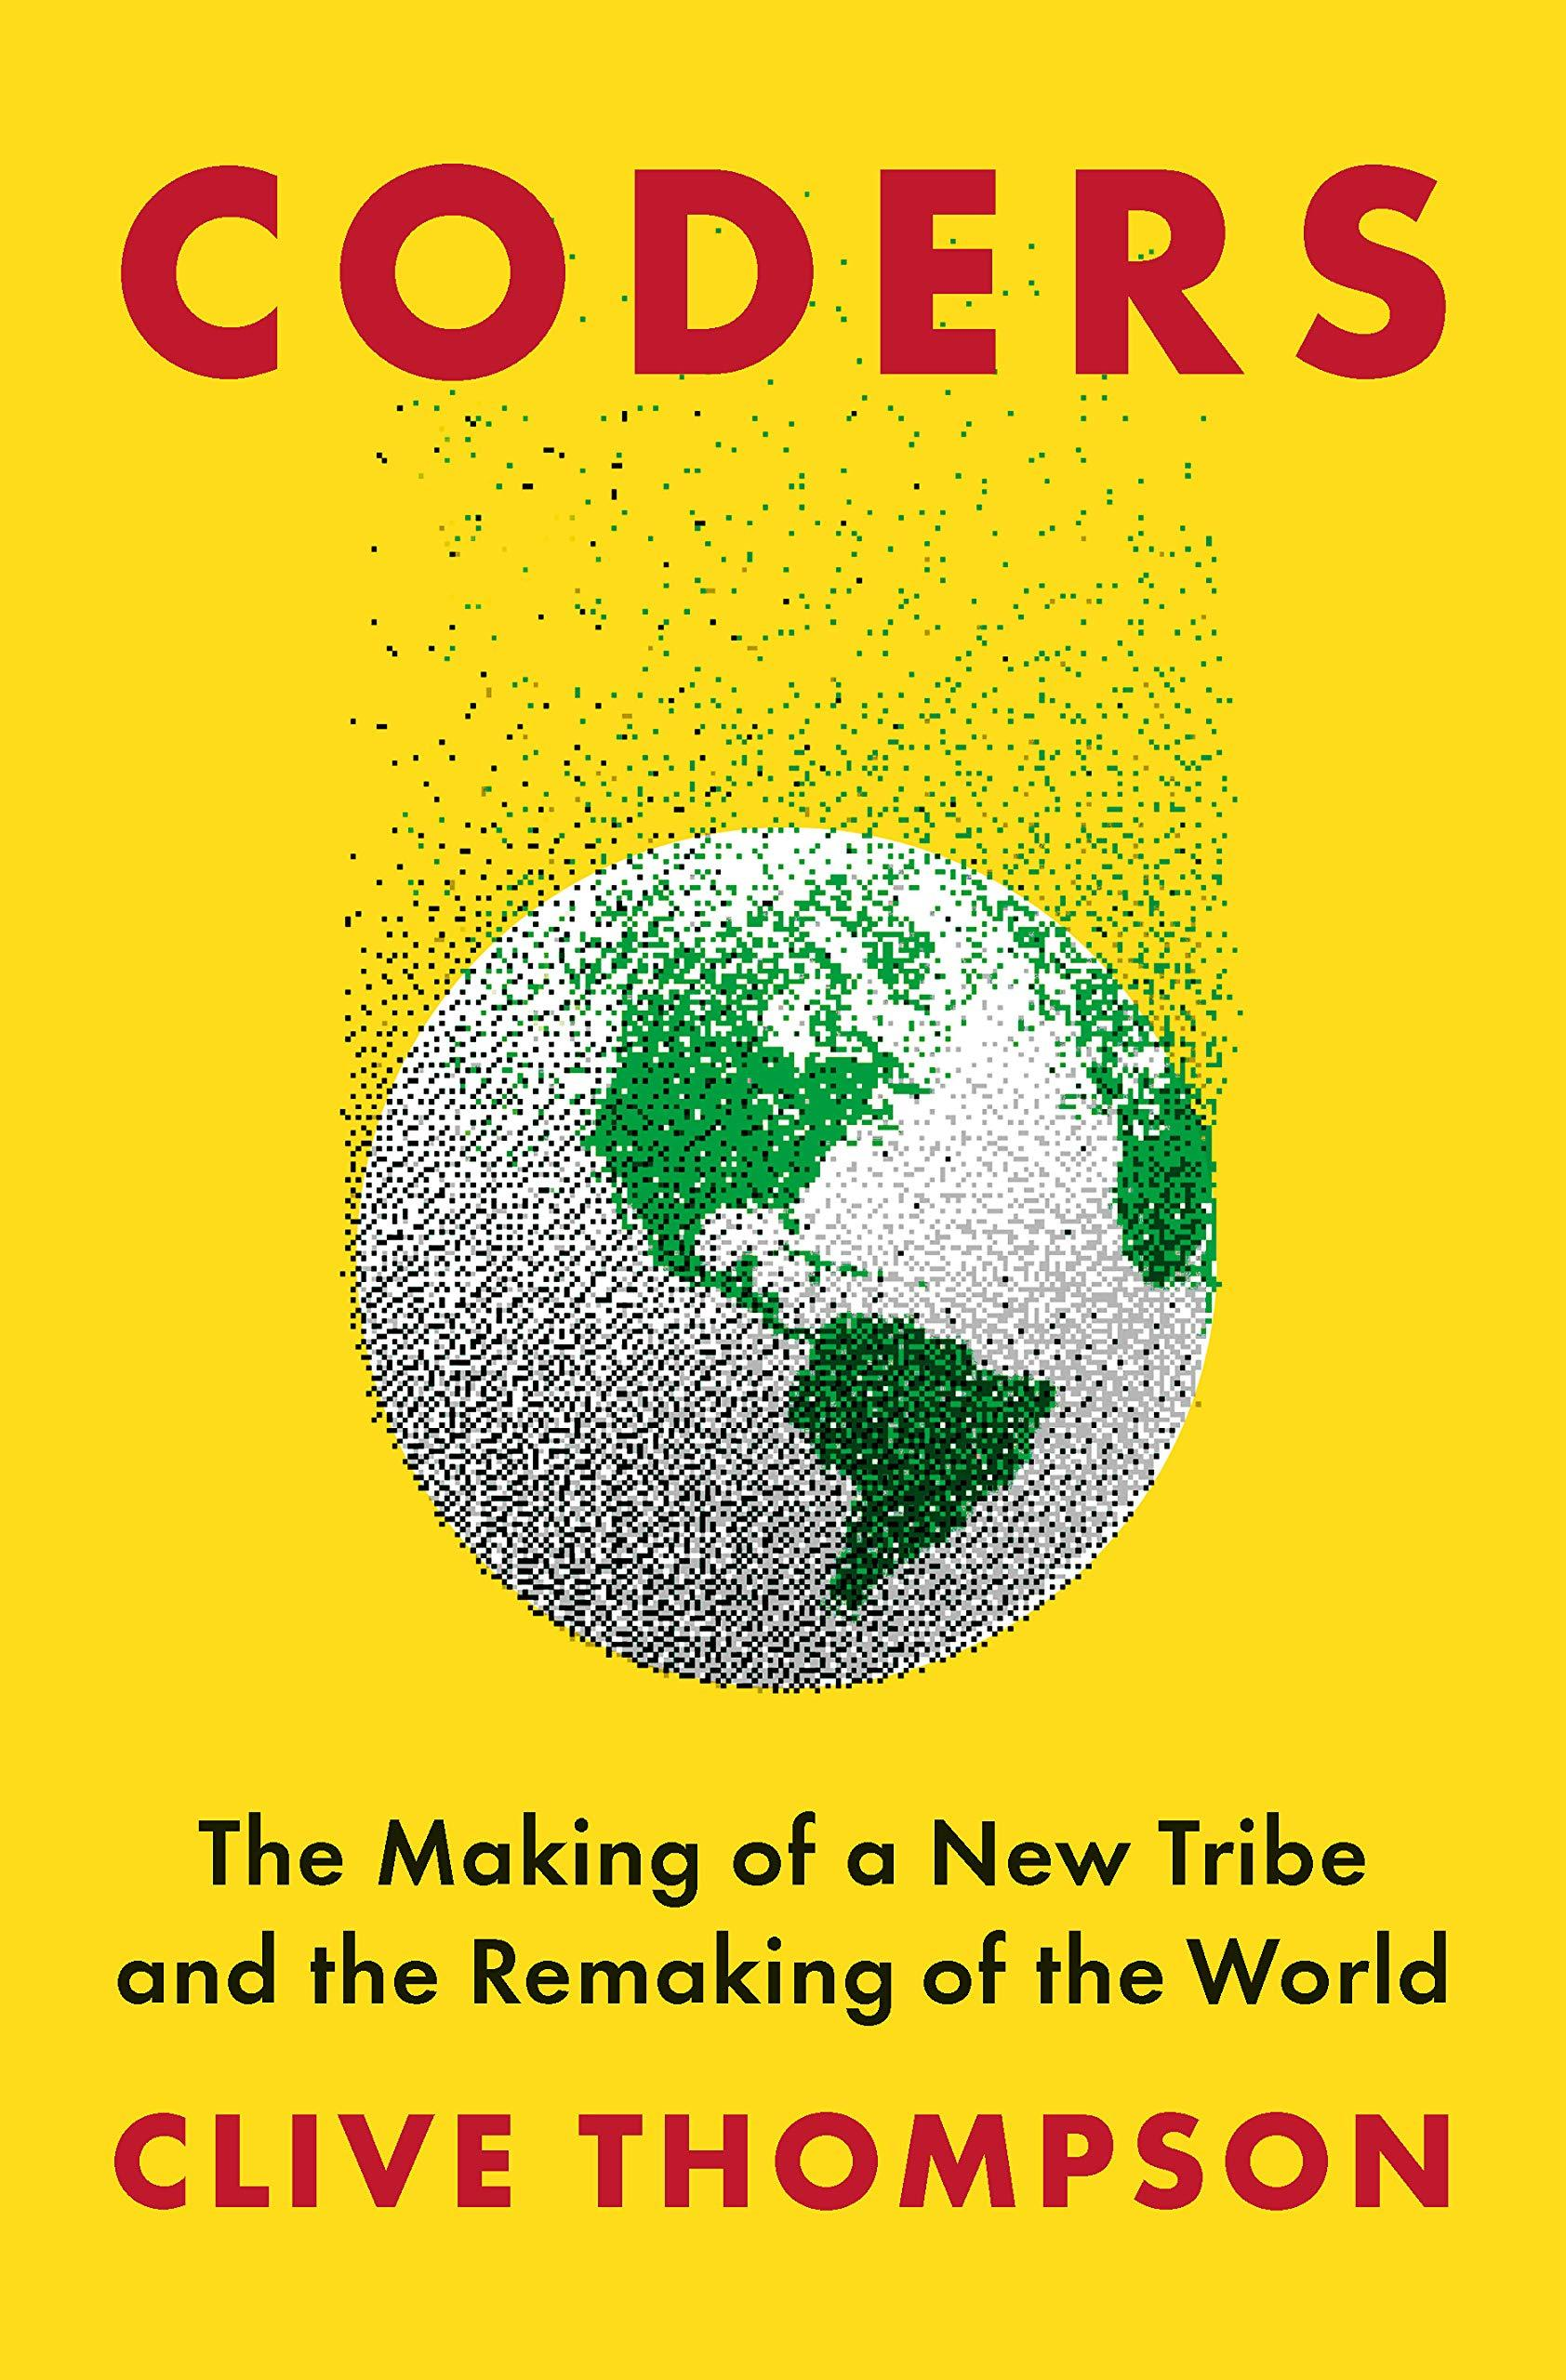 Coders: The Making of a New Tribe and the Remaking of the World by Clive Thompson